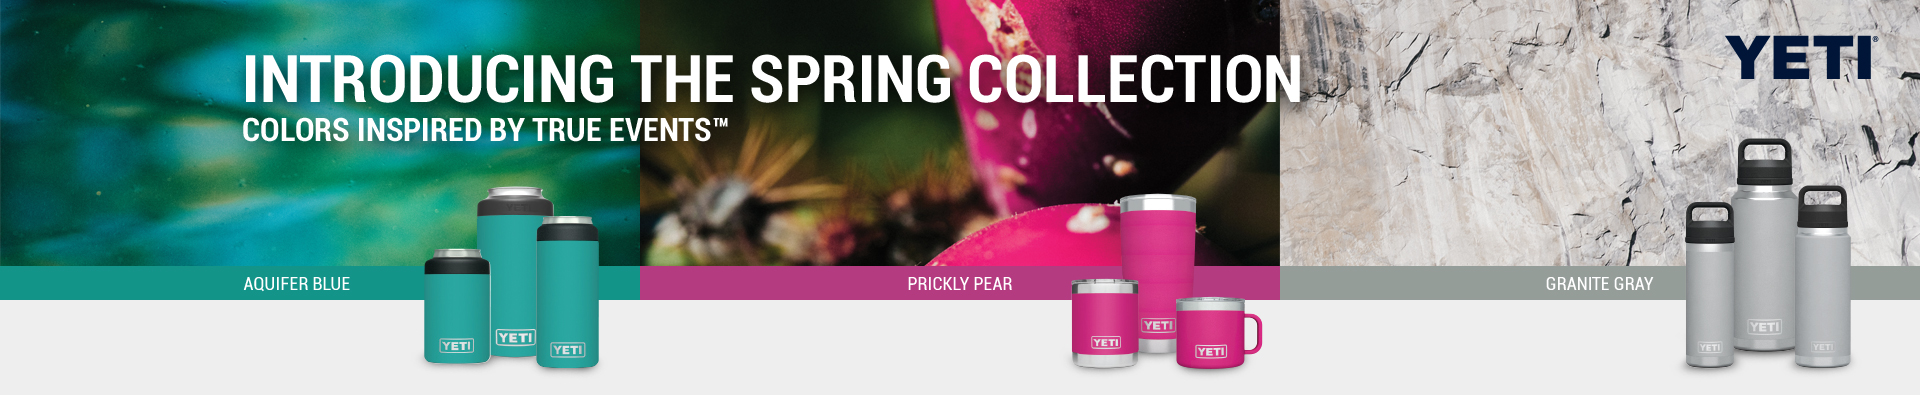 Yeti - Introducing the Spring Collection